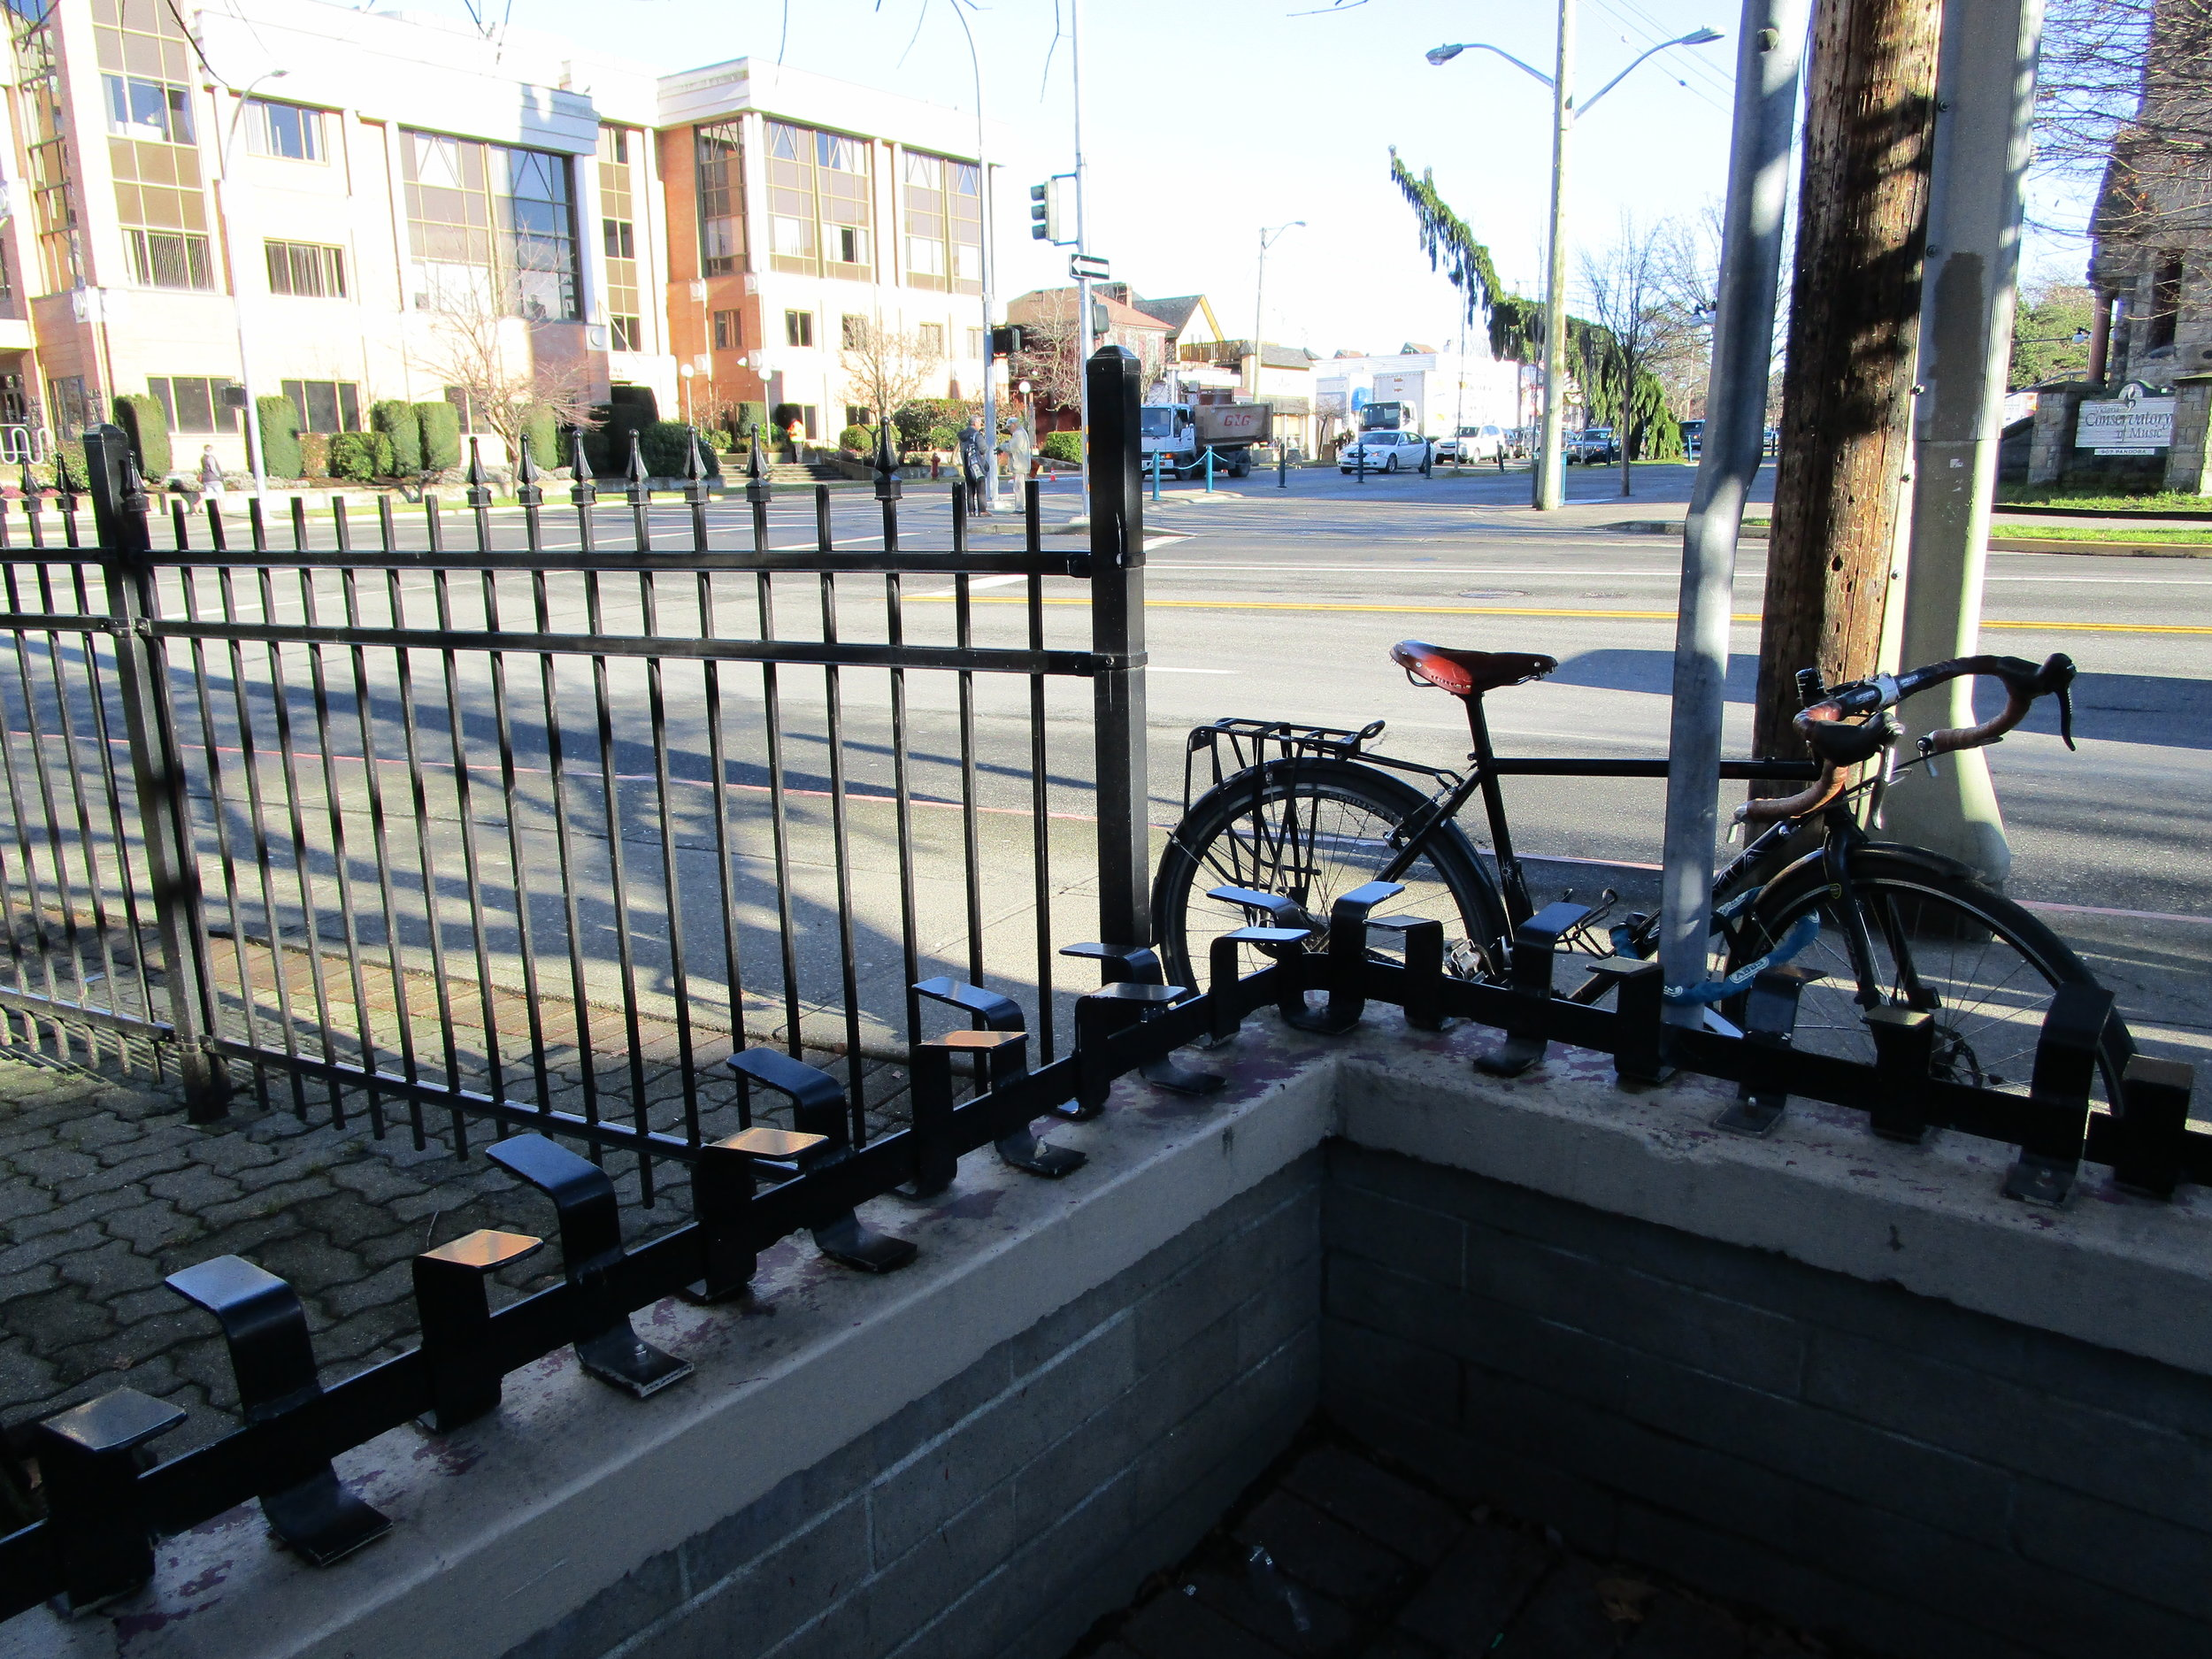 Metal bars stop people from sitting on ledges.